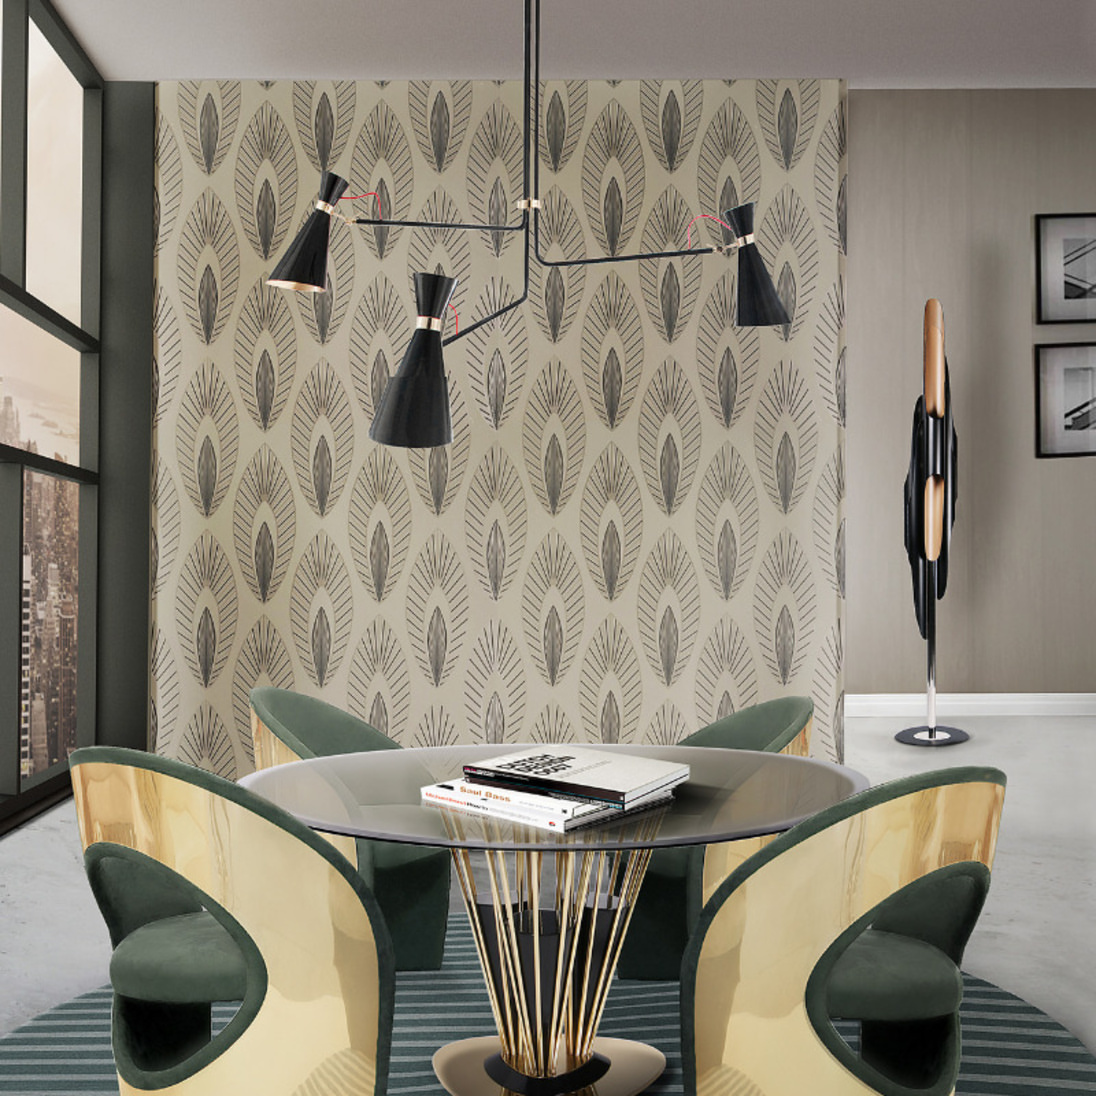 Dining Room Decoration Ideas And Design Inspiration: Dining Room Ideas For A Fabulous 2019